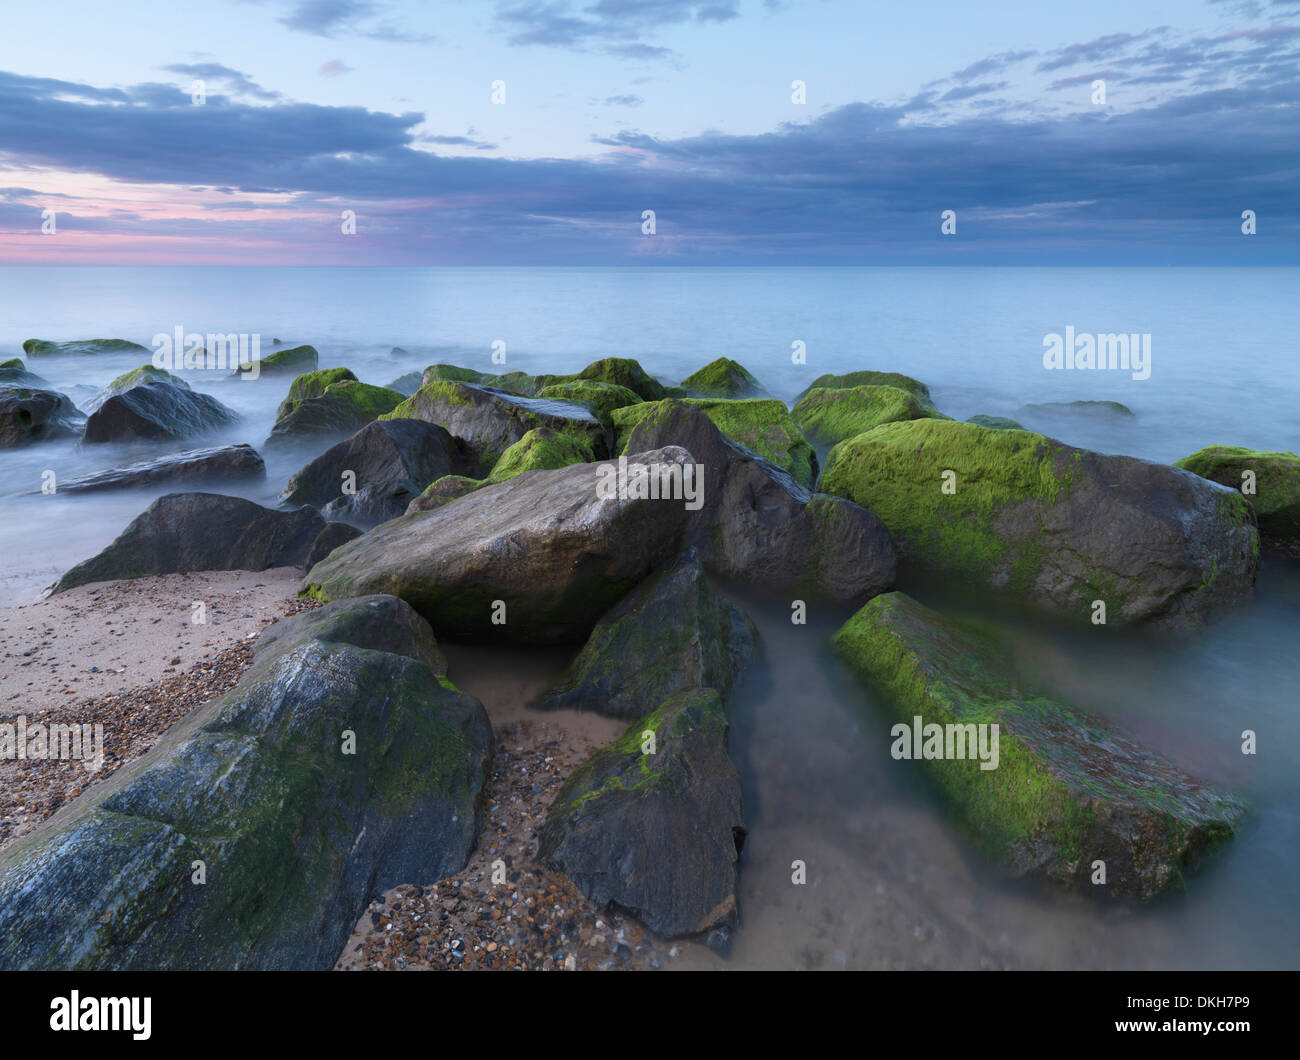 A beautiful sky on a summer evening at Caister 0n Sea, Norfolk, England, United Kingdom, Europe Stock Photo